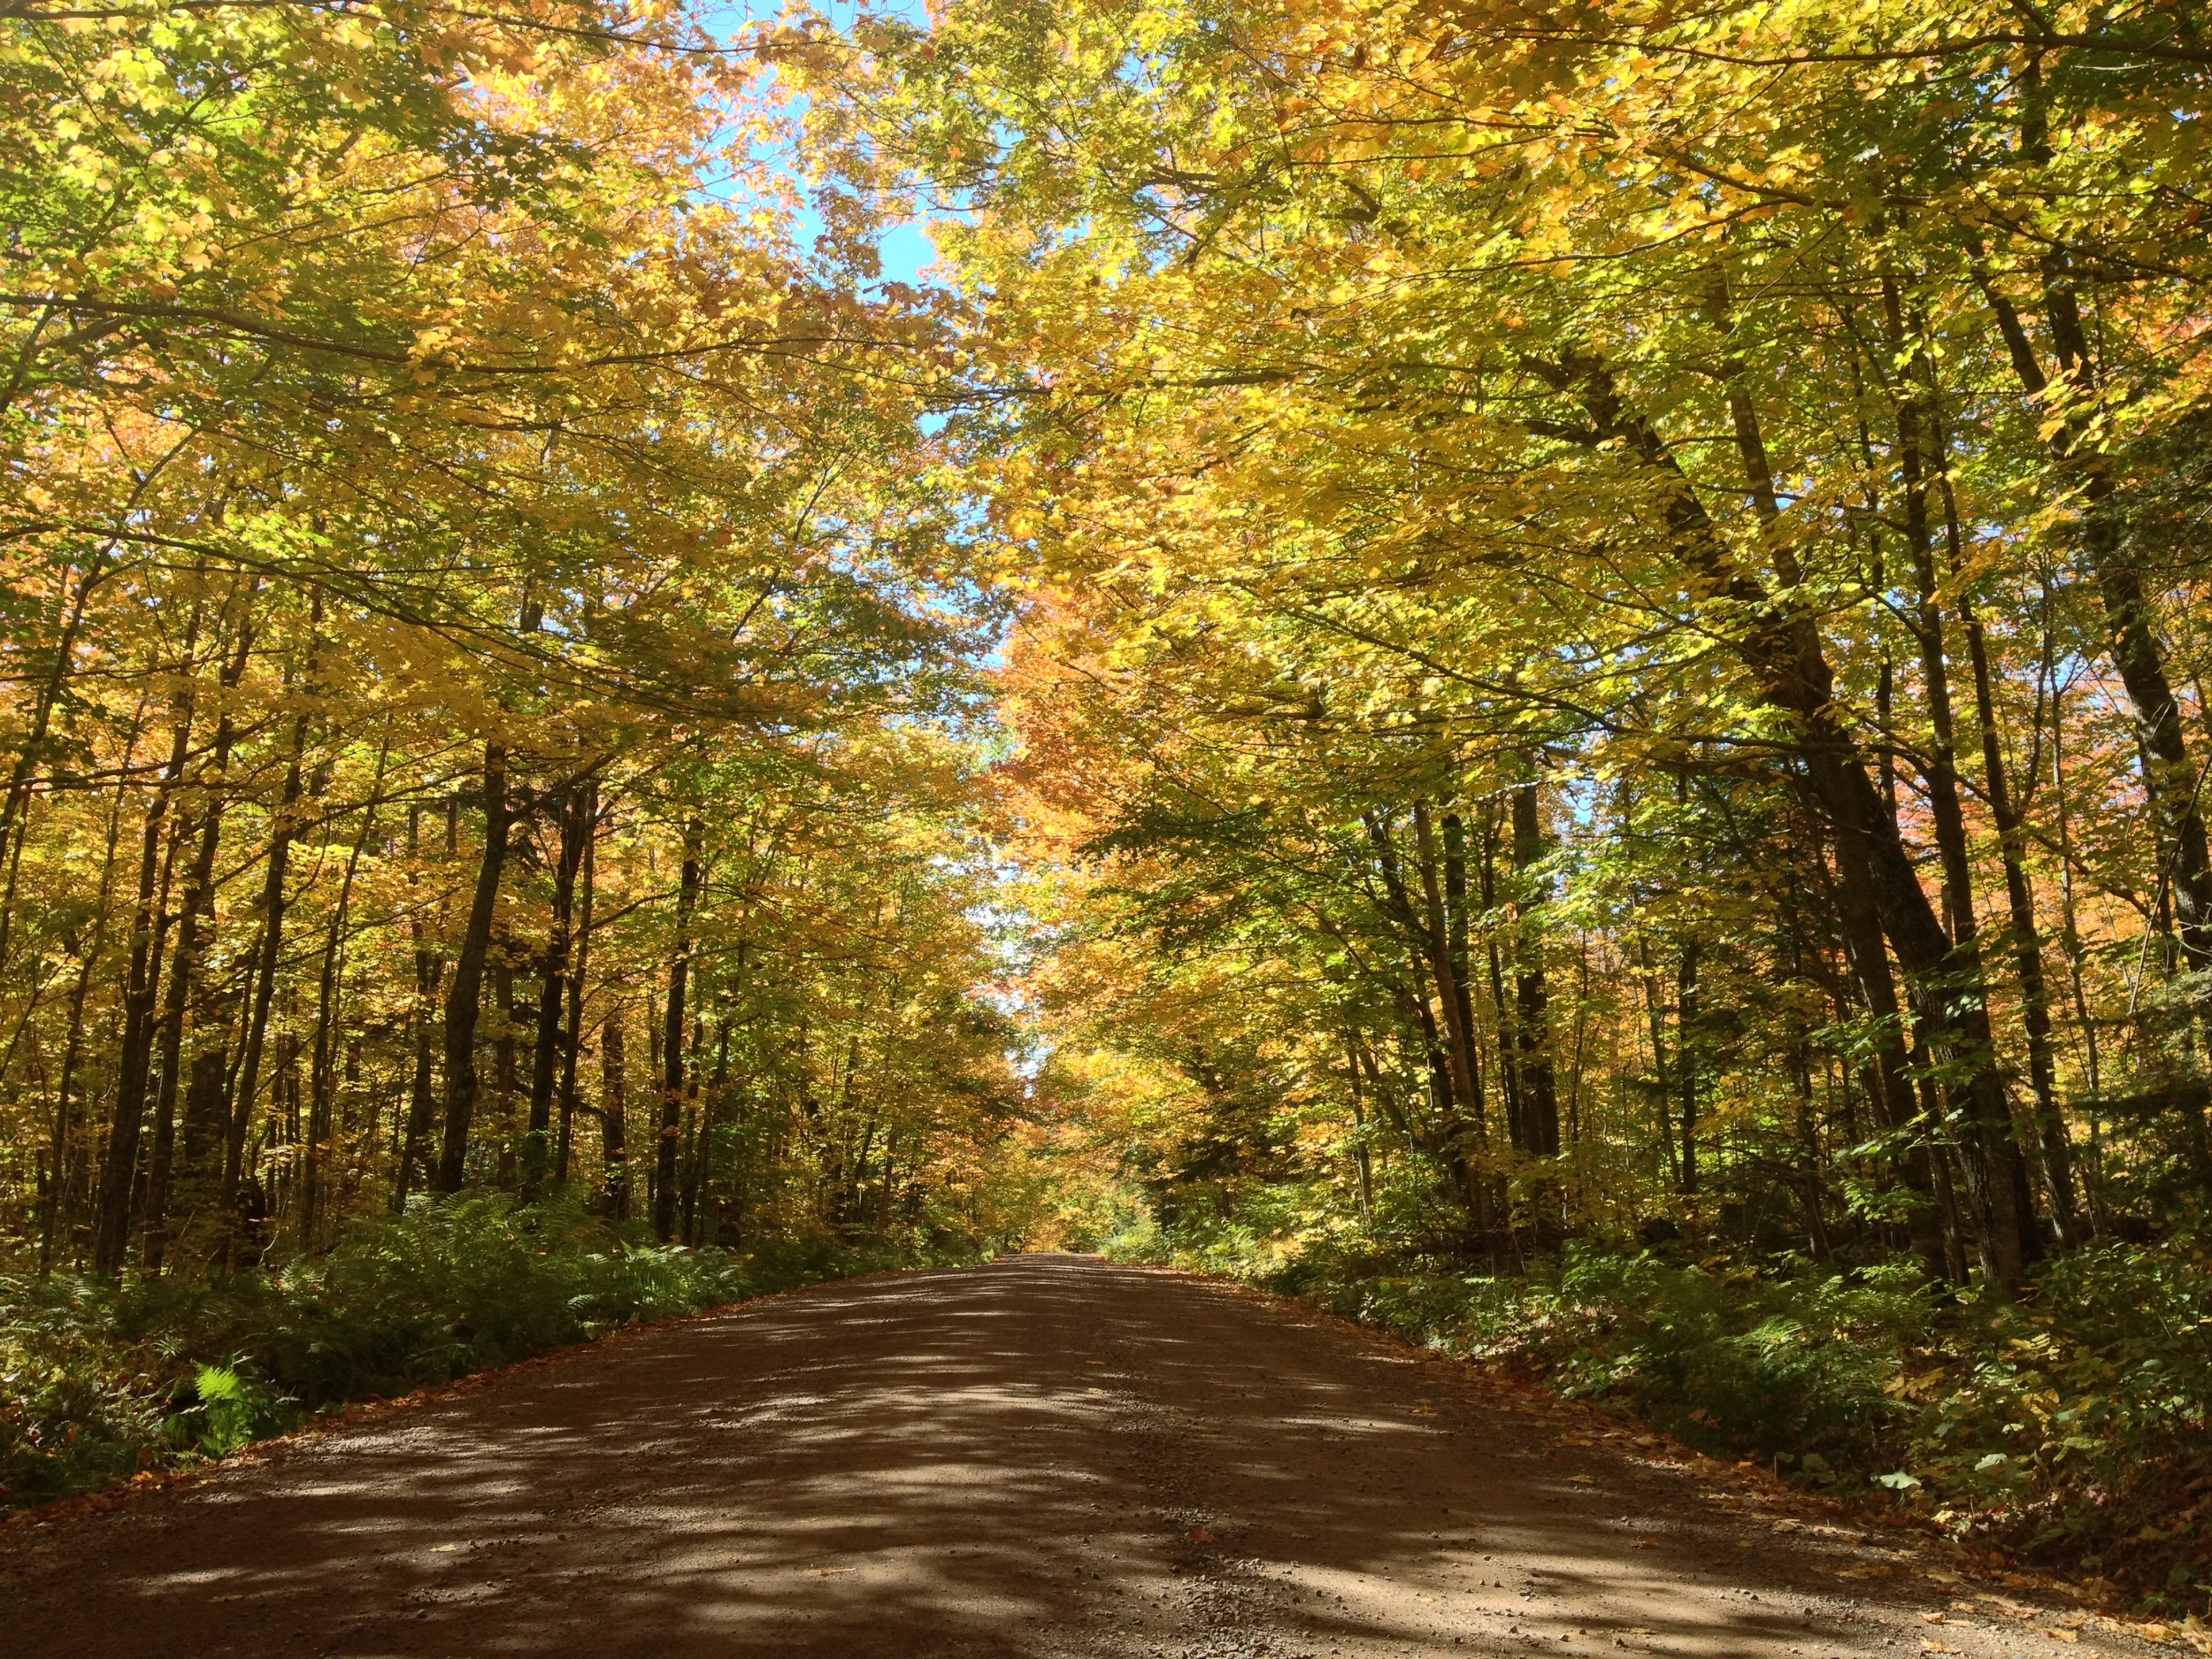 More Fall Colors in Superior National Forest